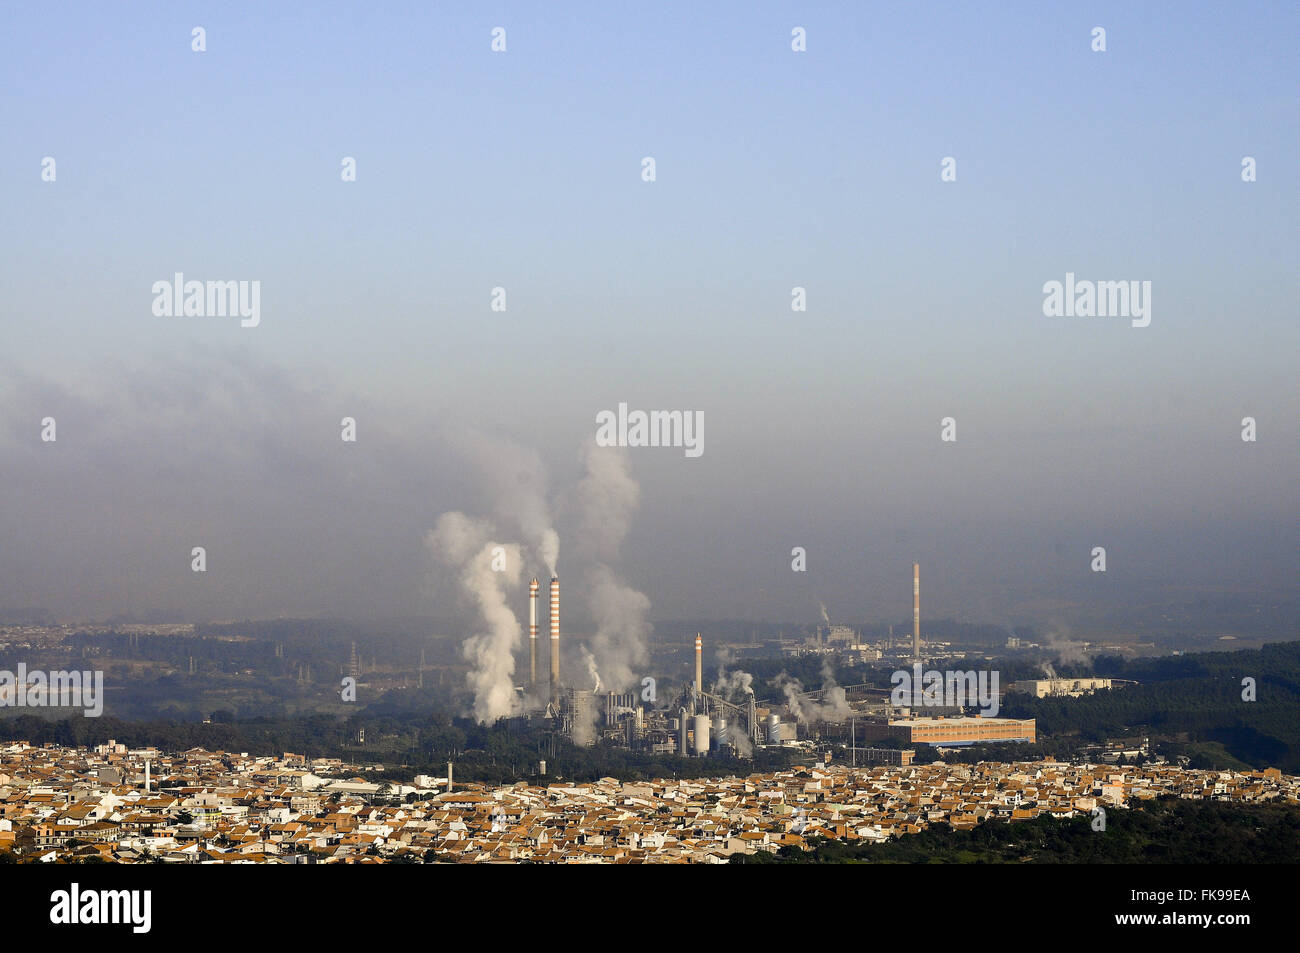 Air pollution in the municipality in the State of Sao Paulo - Stock Image